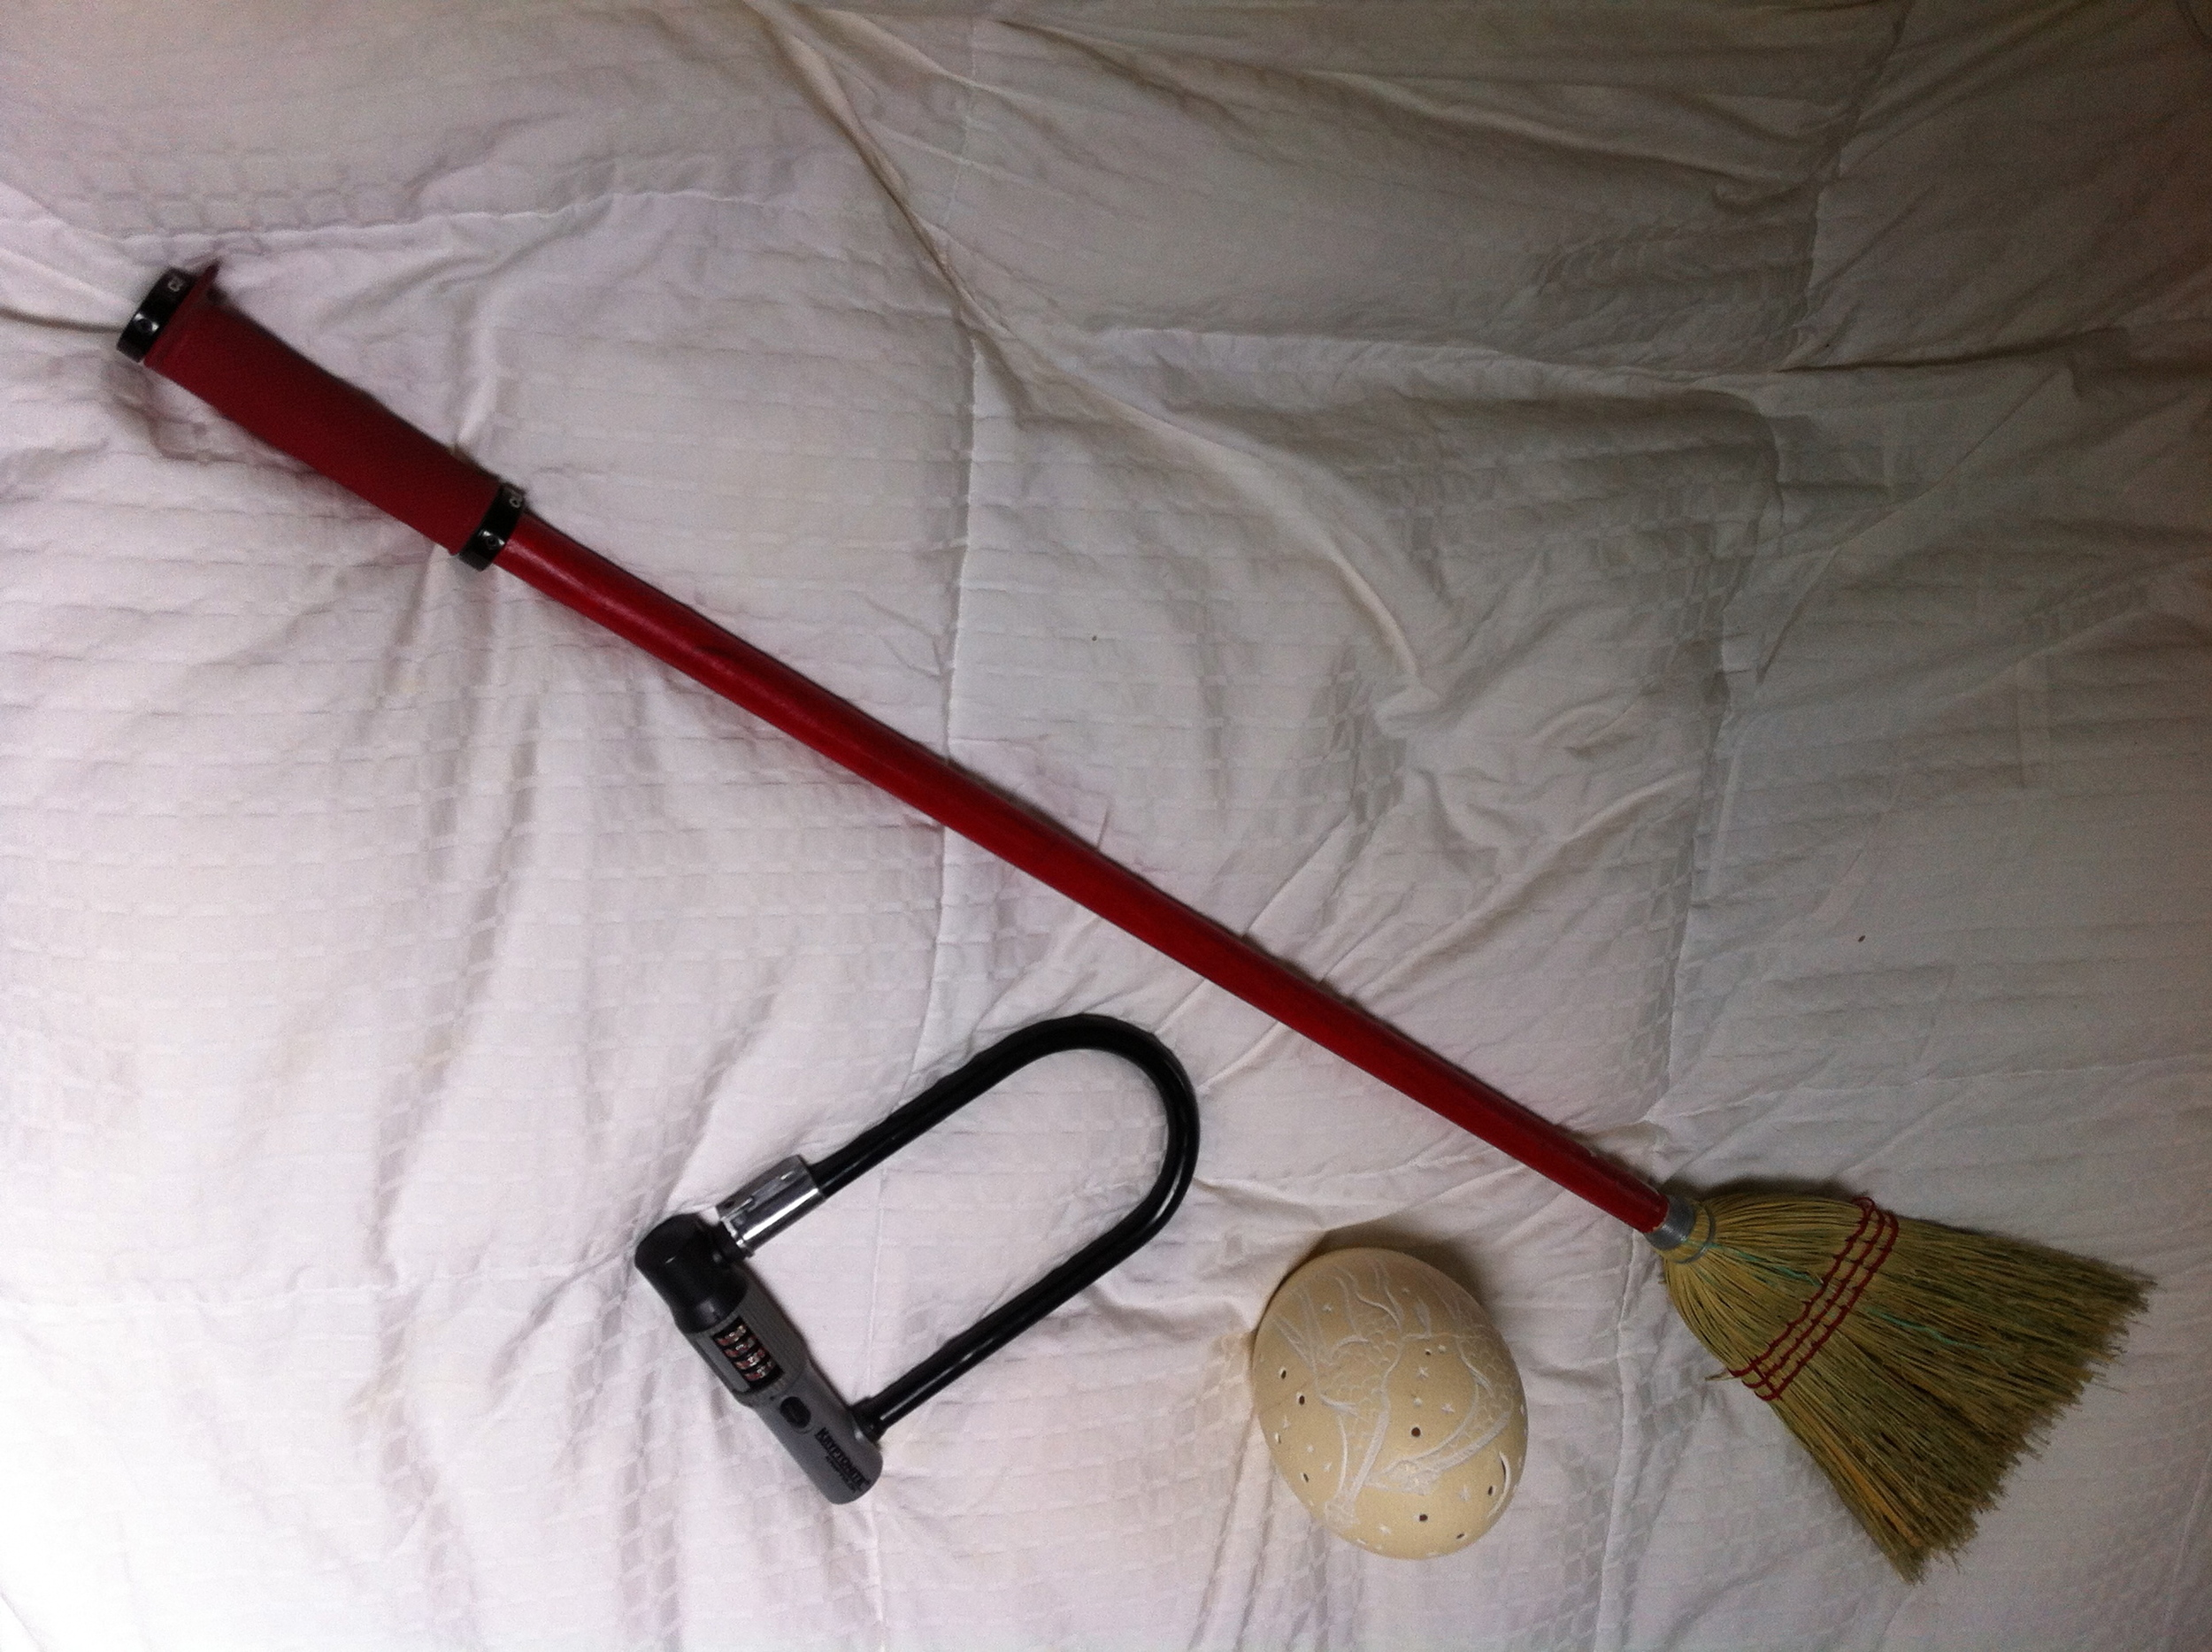 my new and improved broom, bike lock, and lantern